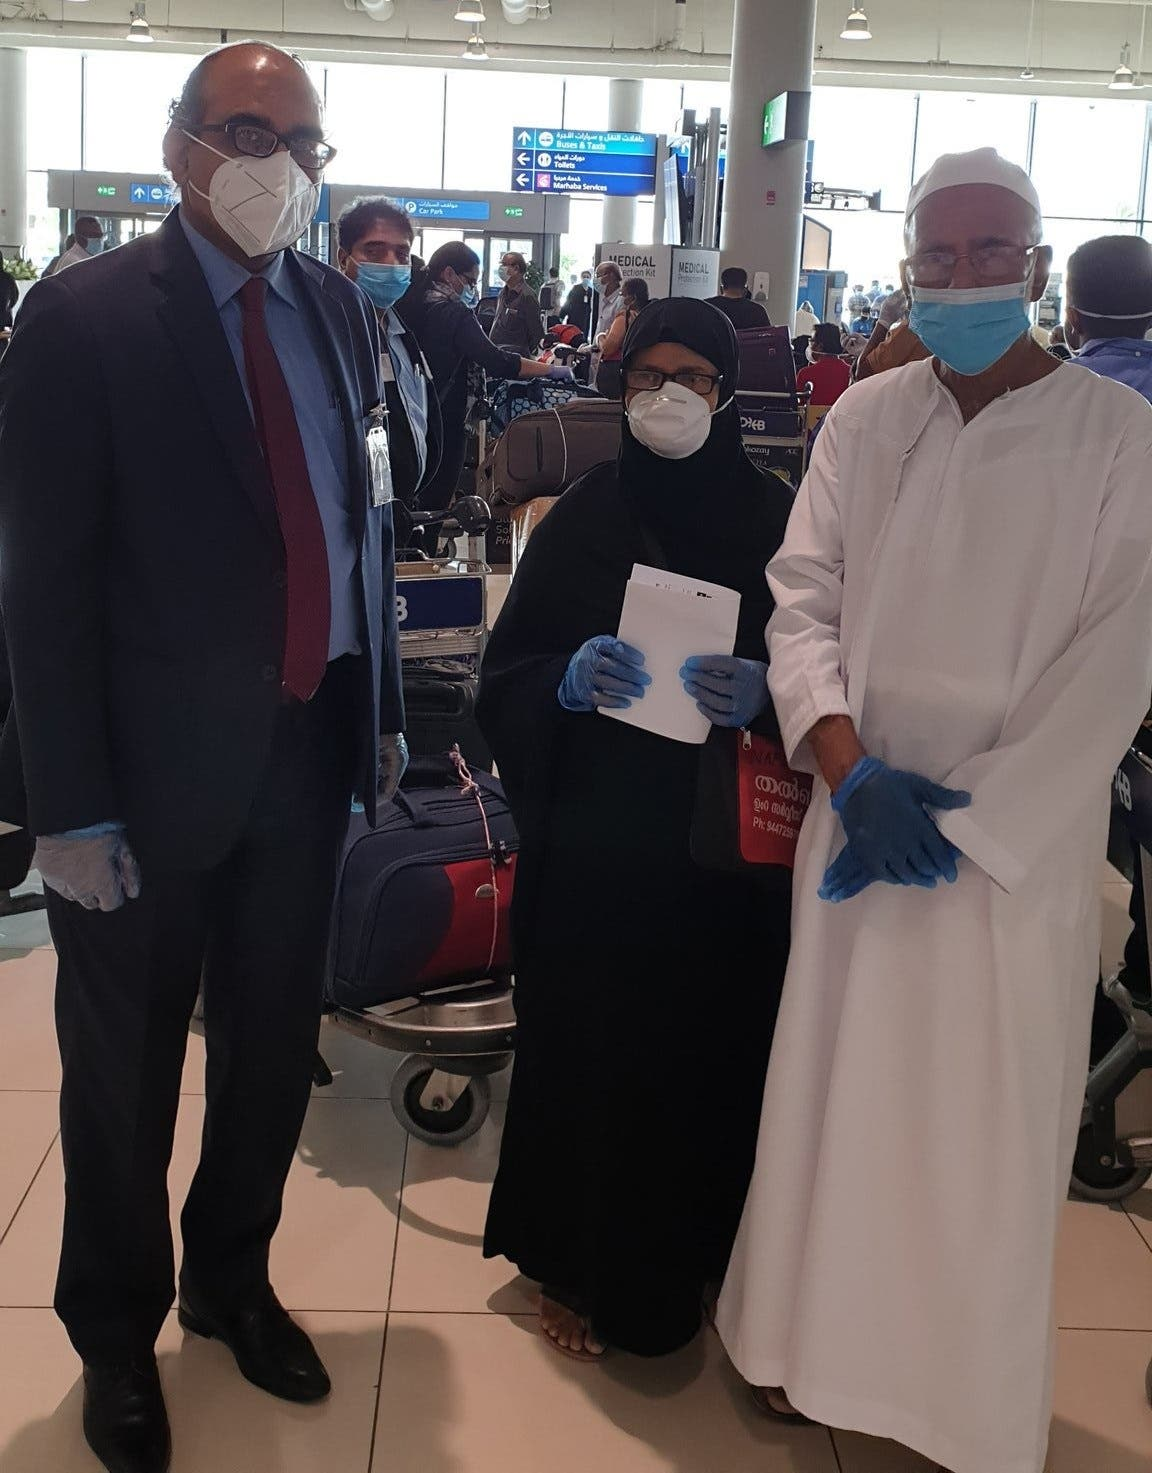 Vipul, the consul general of India in Dubai, with an elderly couple travelling on Dubai-Kozhikode flight at Dubai Airport on Thursday. (Twitter)